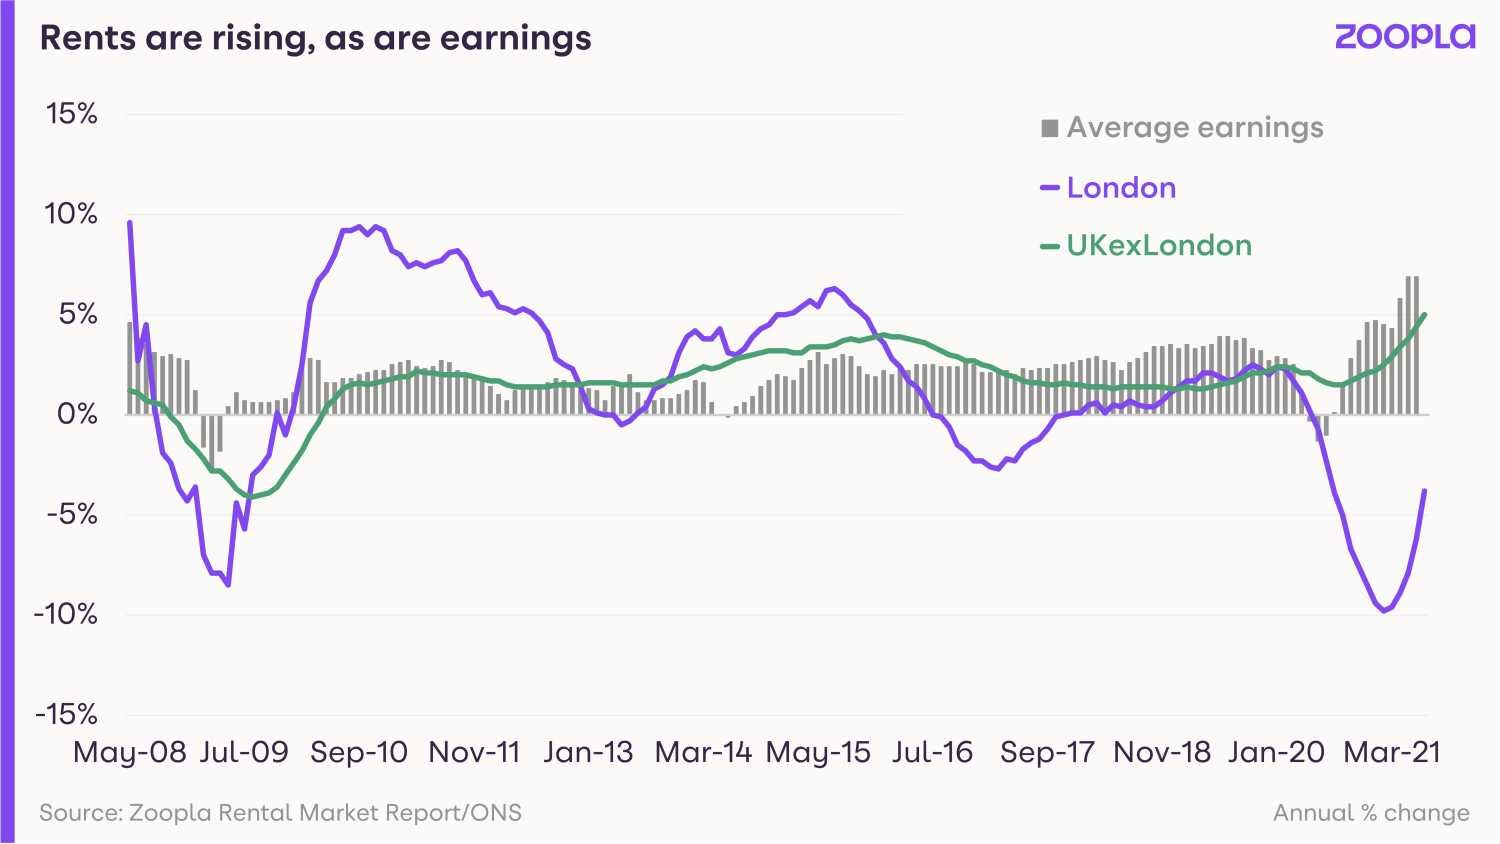 Graph shows how rents and earnings are both rising